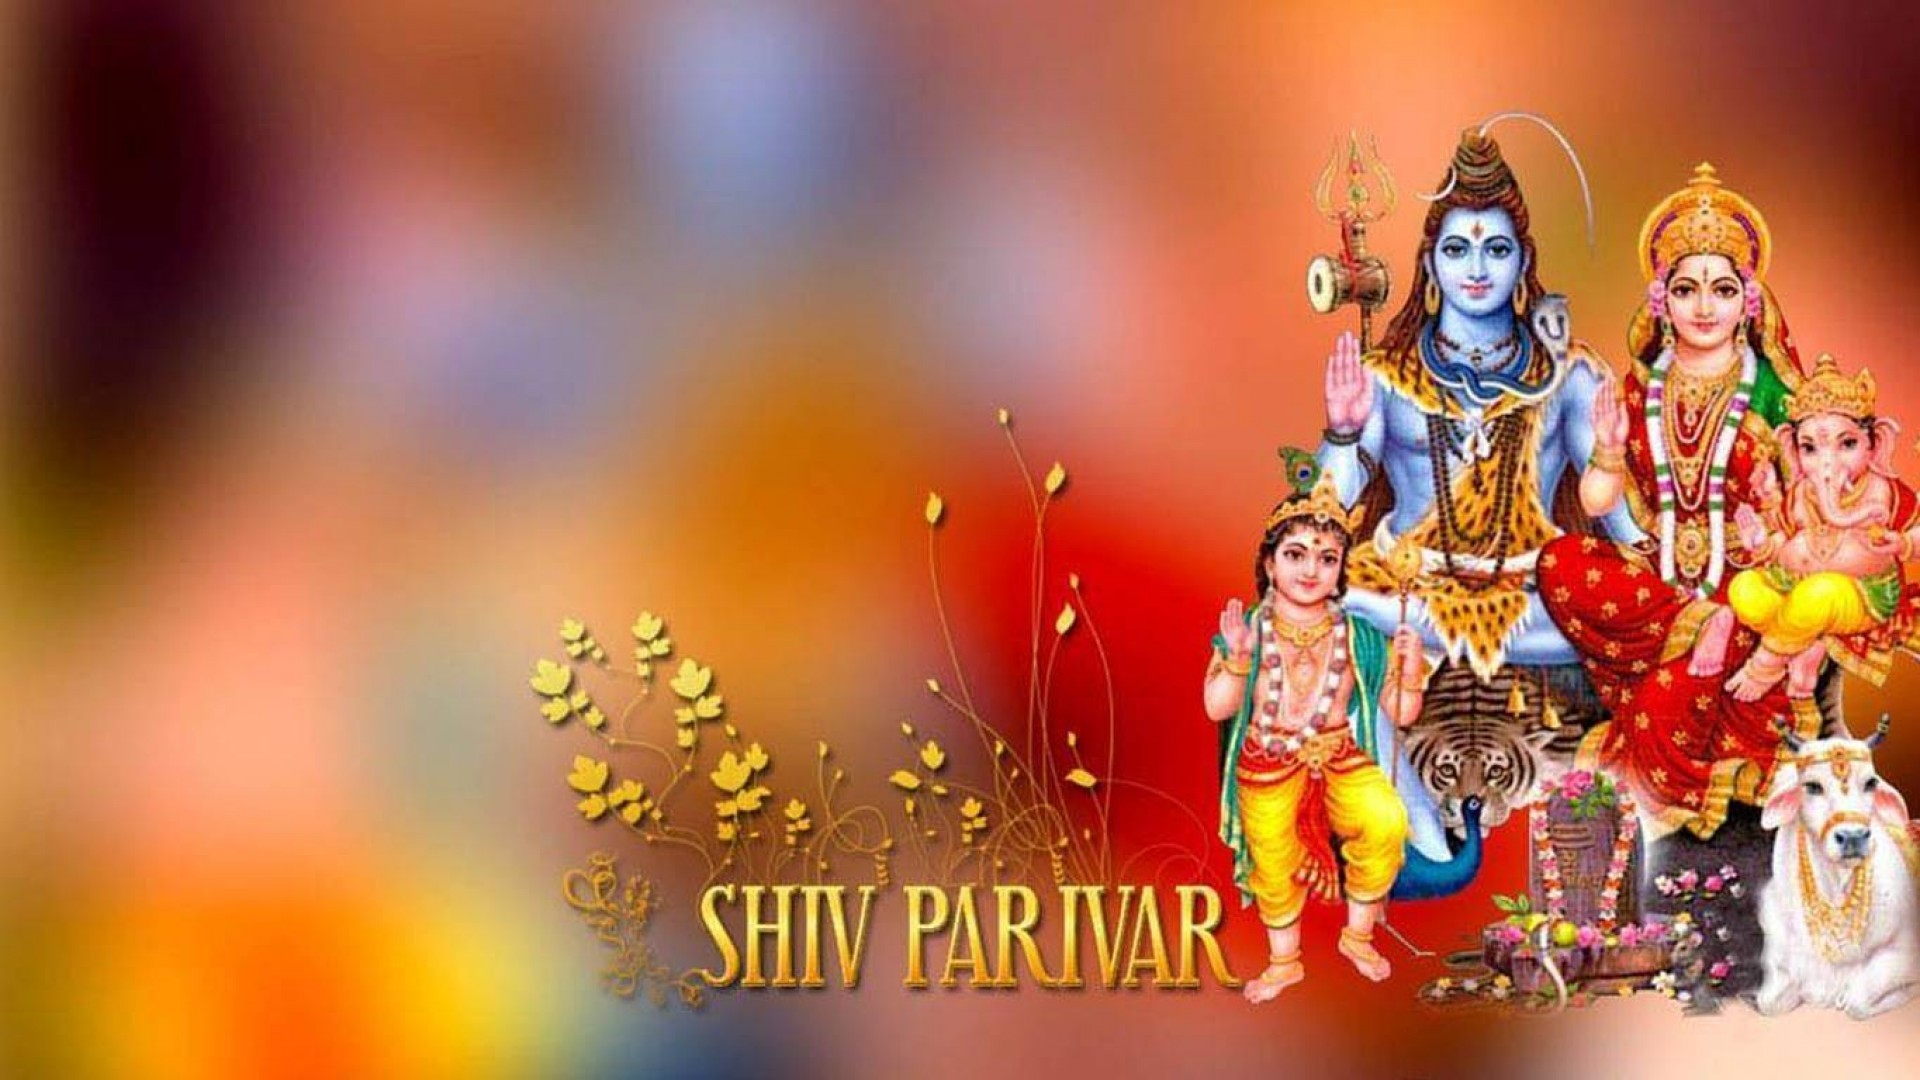 lord shiva parvati wallpapers high resolution images (6)